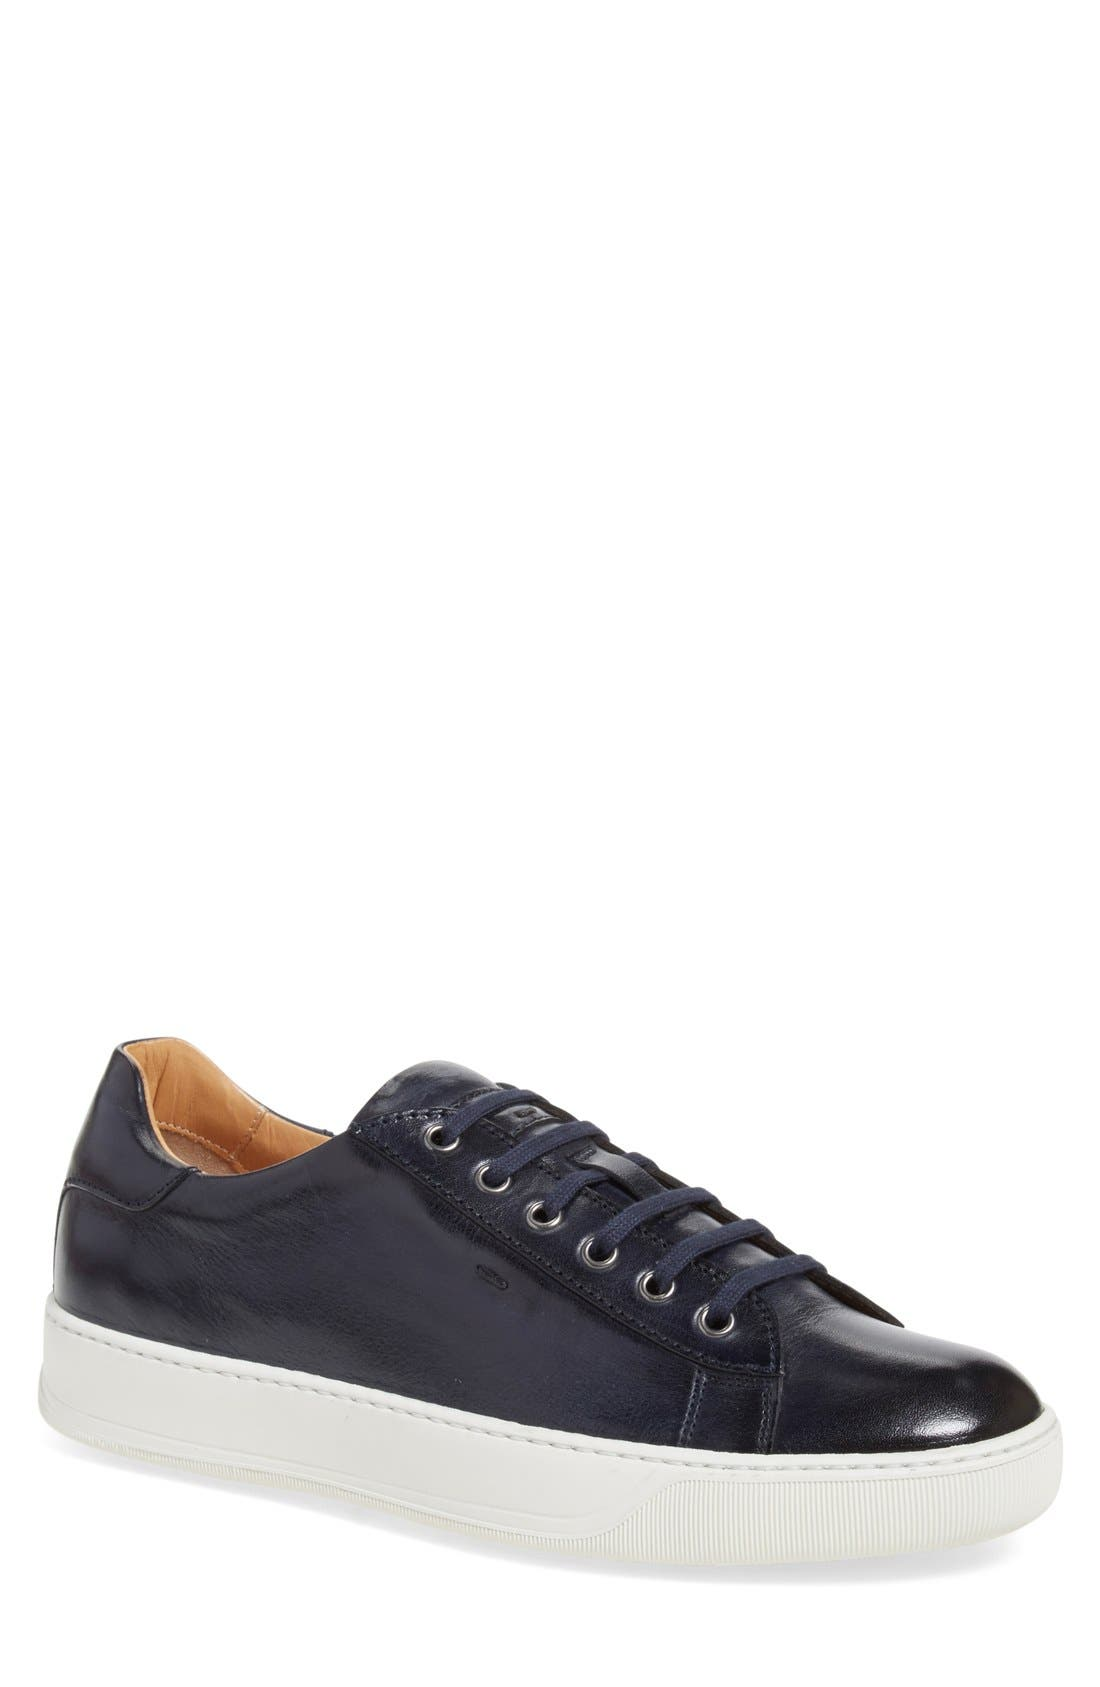 'Apache' Lace-Up Sneaker,                             Main thumbnail 1, color,                             410